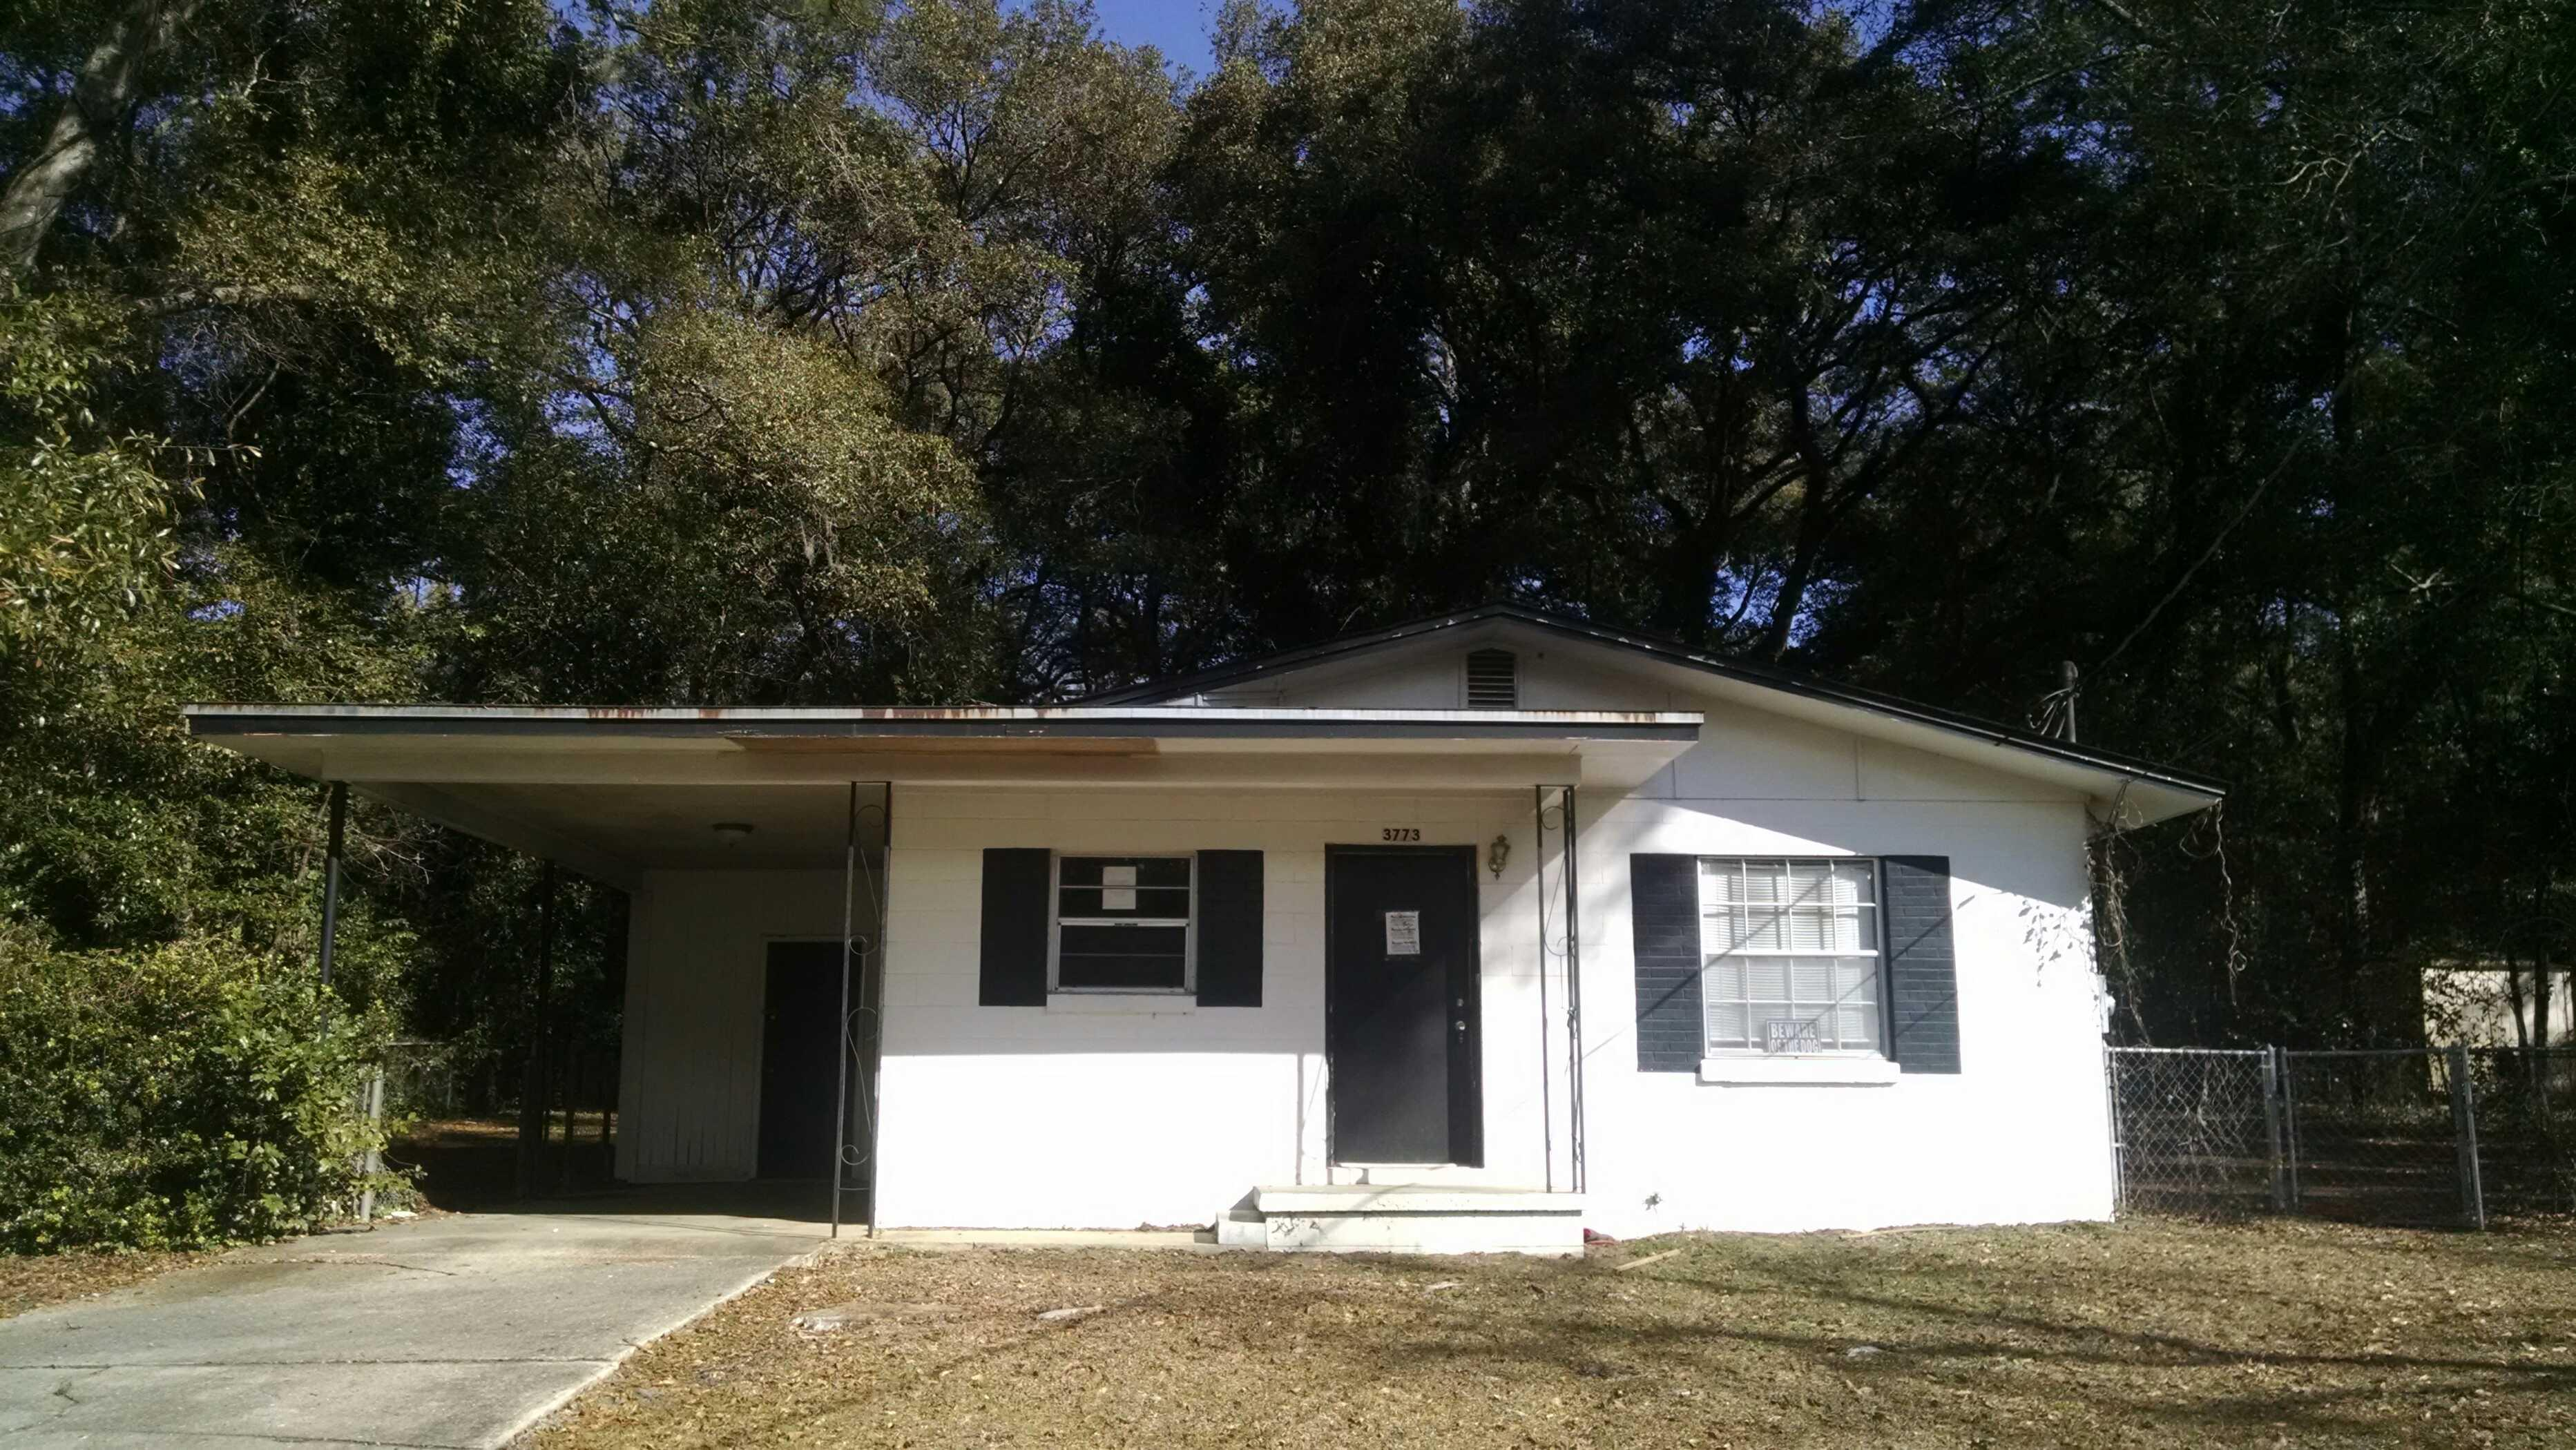 32310 foreclosures – 3773 Roswell Dr, Tallahassee, FL 32310